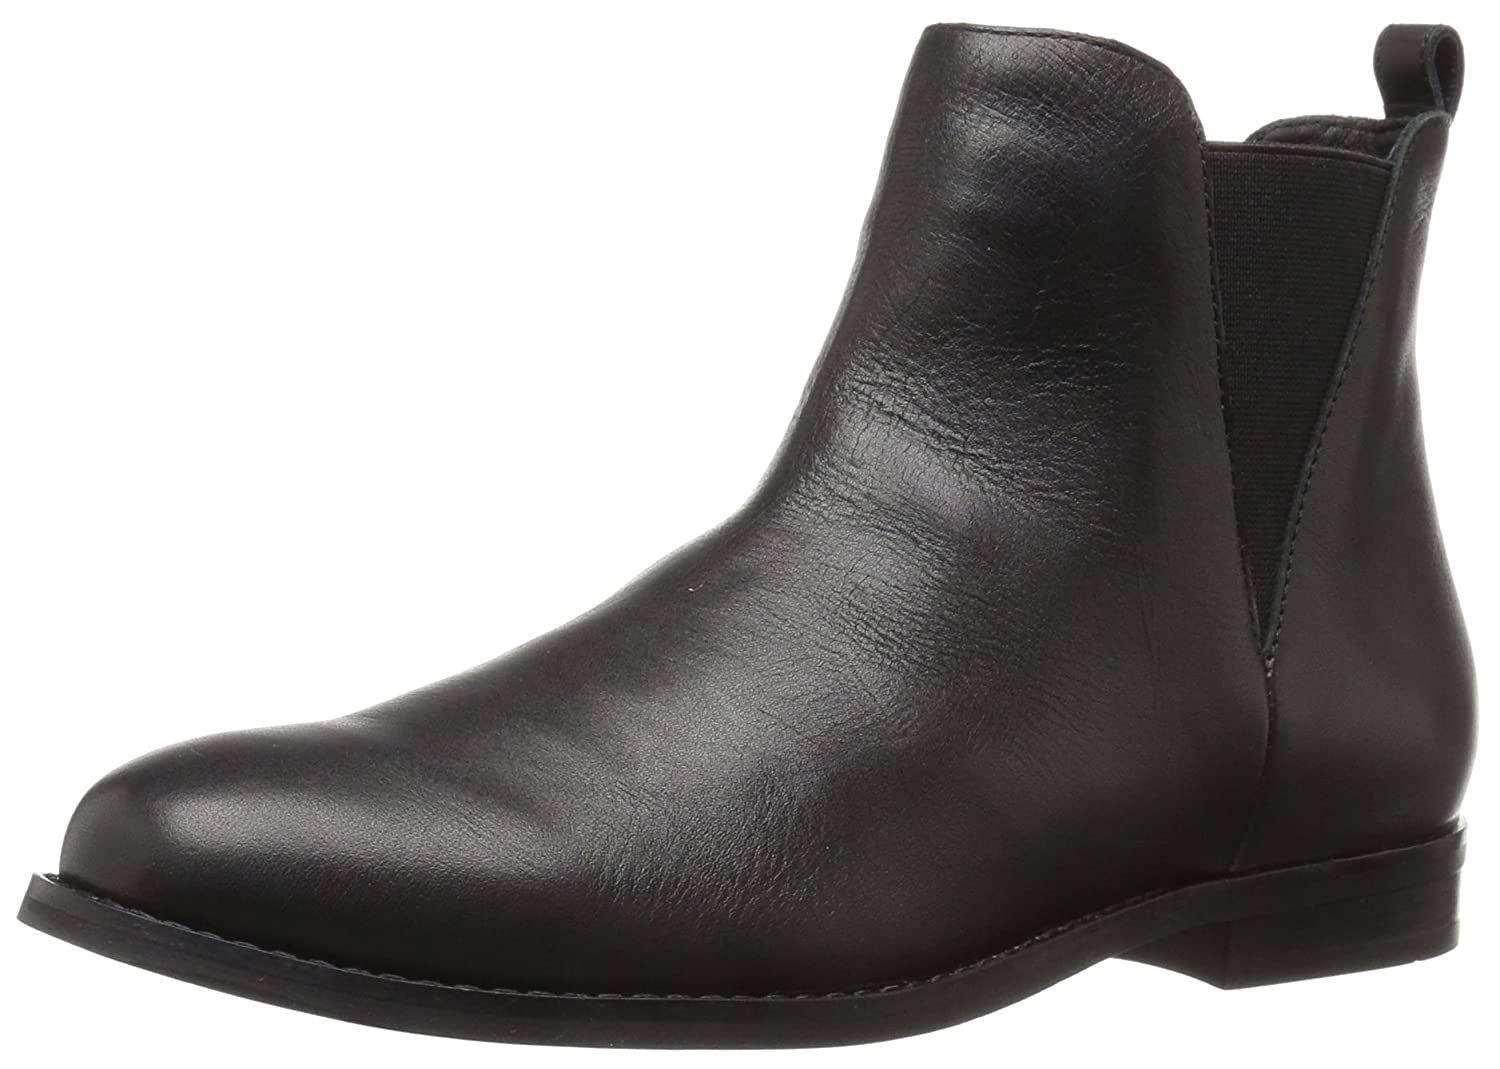 206 Collective Women's Ballard Chelsea Ankle Boot AW0013ABlack